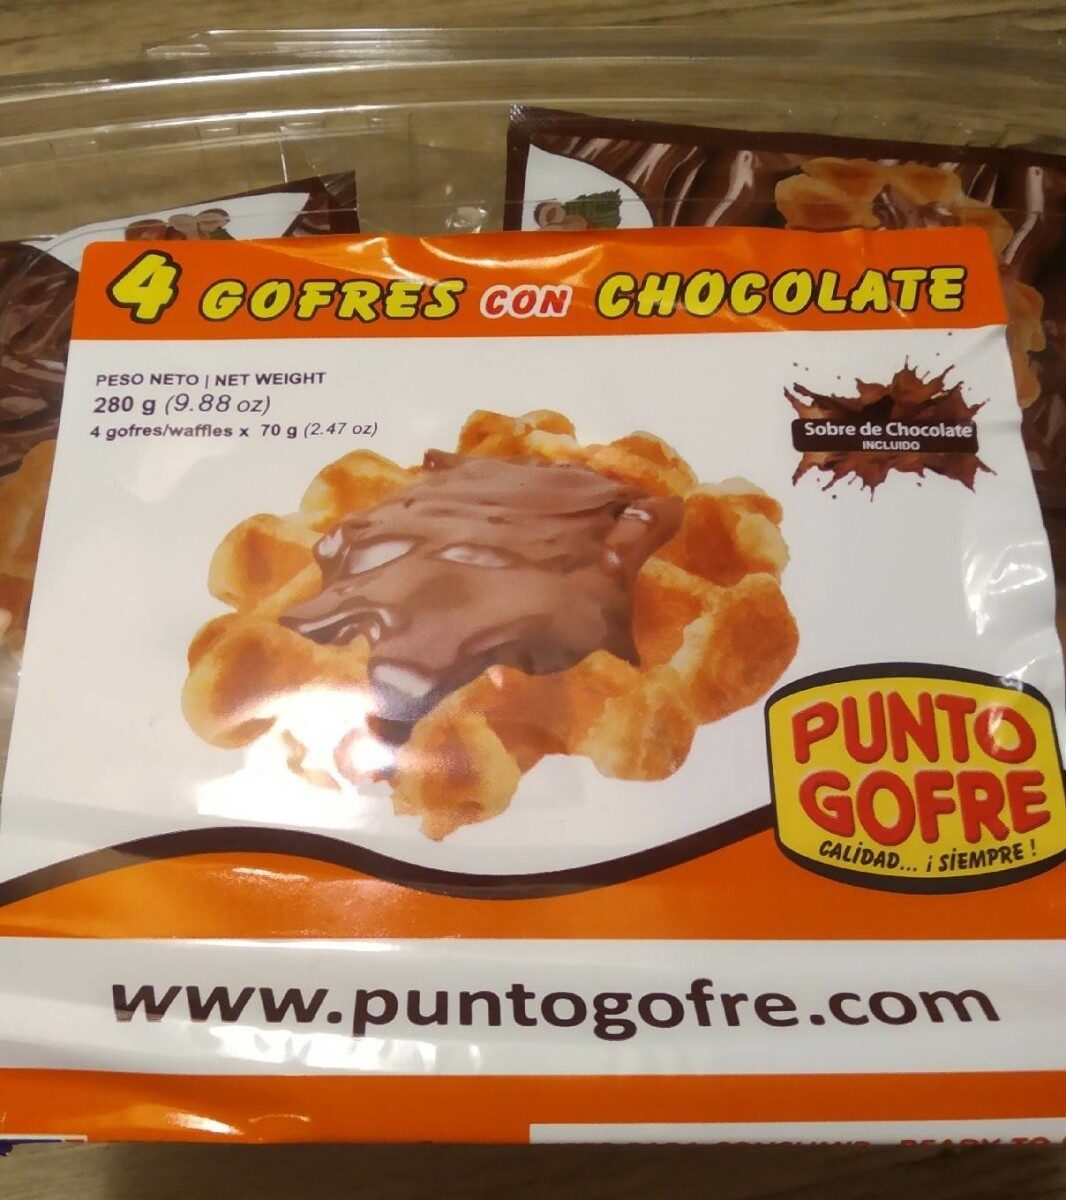 Gofres con chocolate - Product